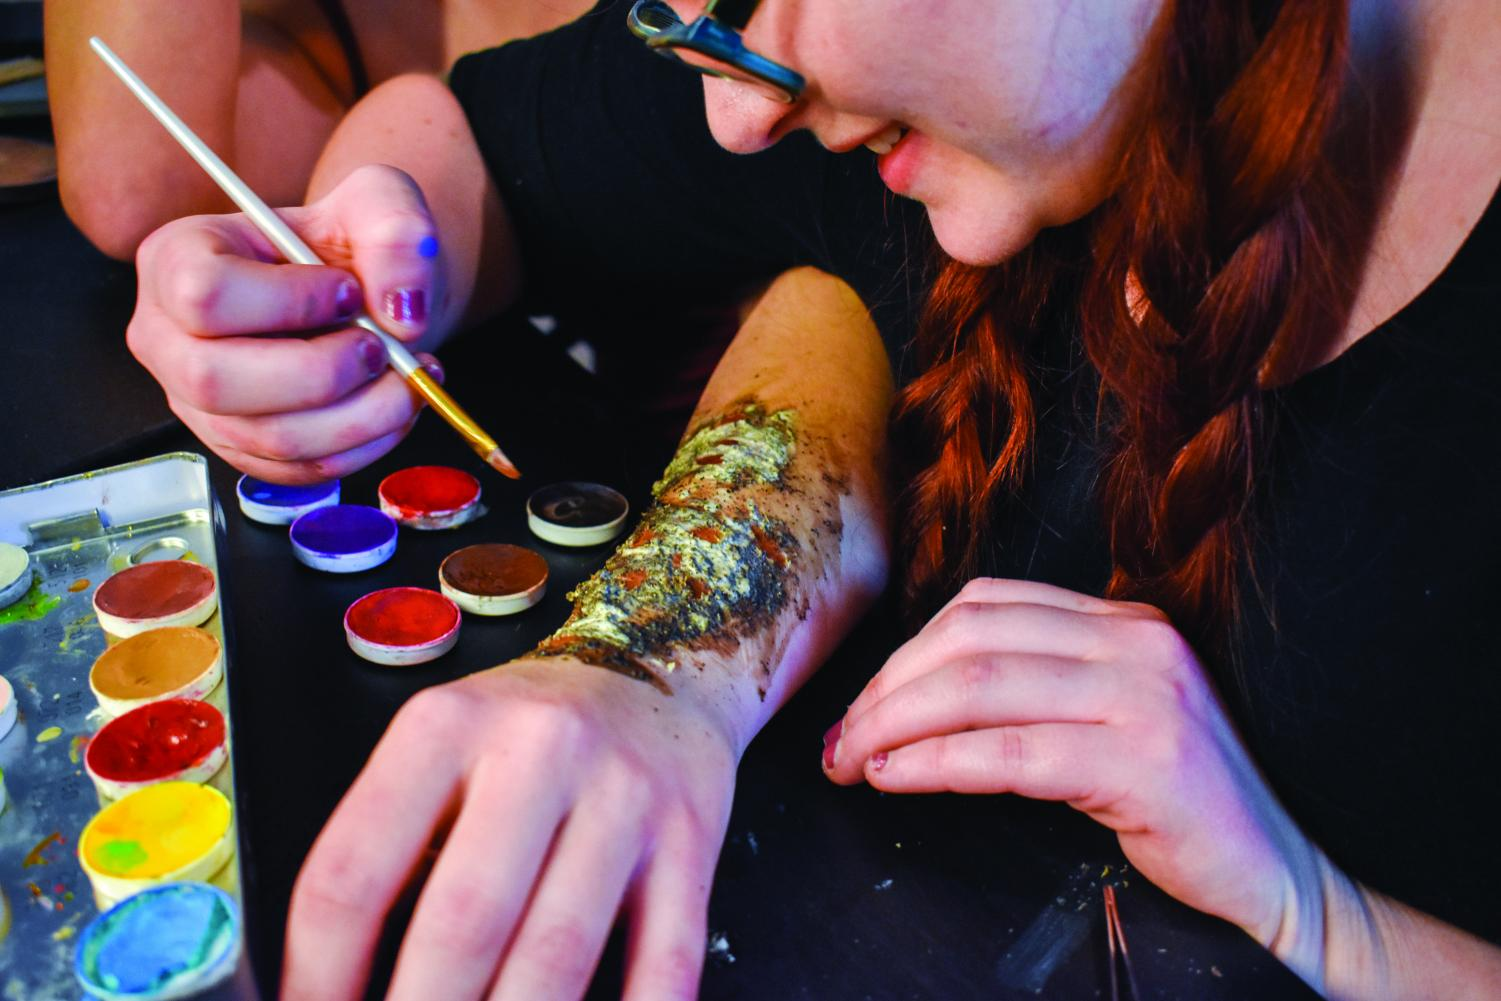 Third-year entrepreneurship student Emily Sokolowski does special-effects makeup and plans to start her own makeup company in the future.